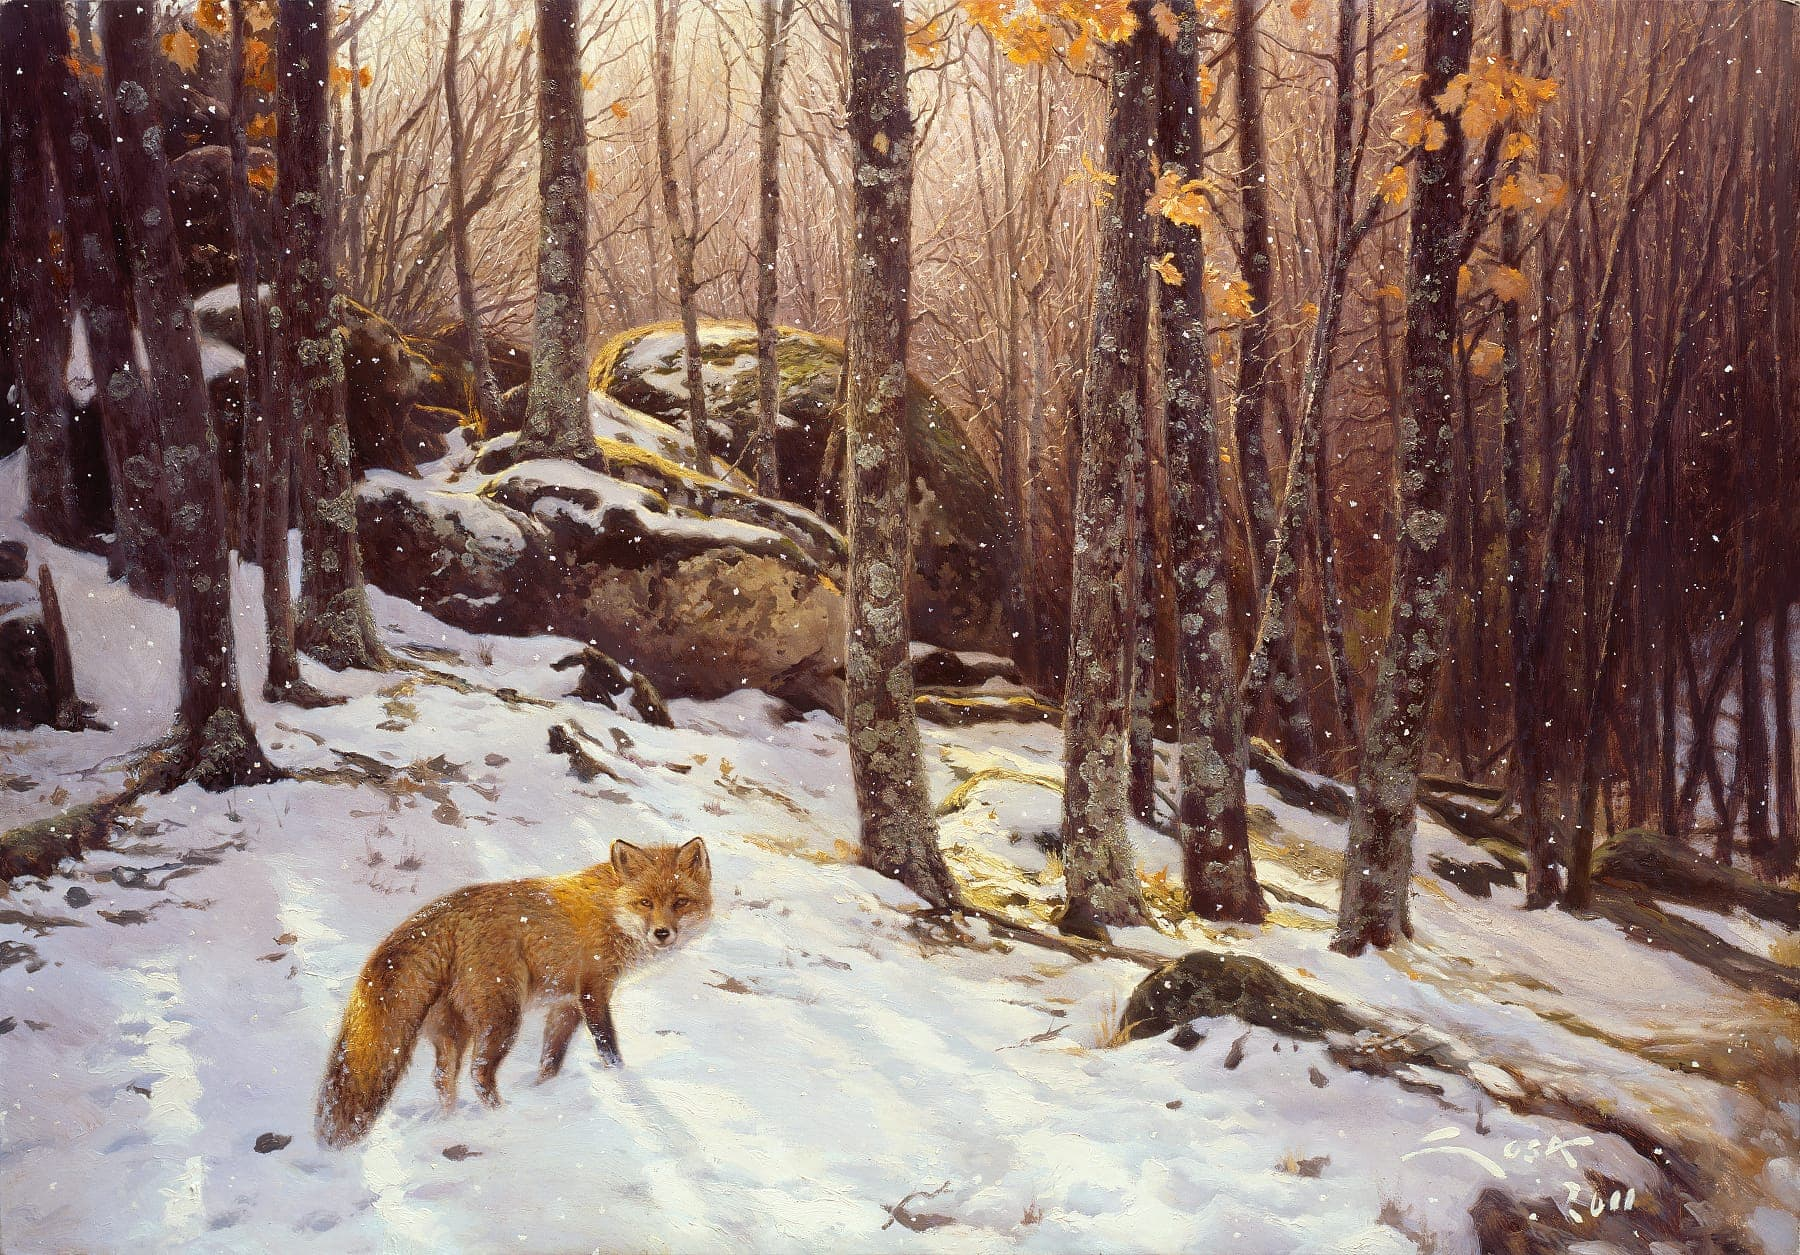 Painting of a red fox in the forest